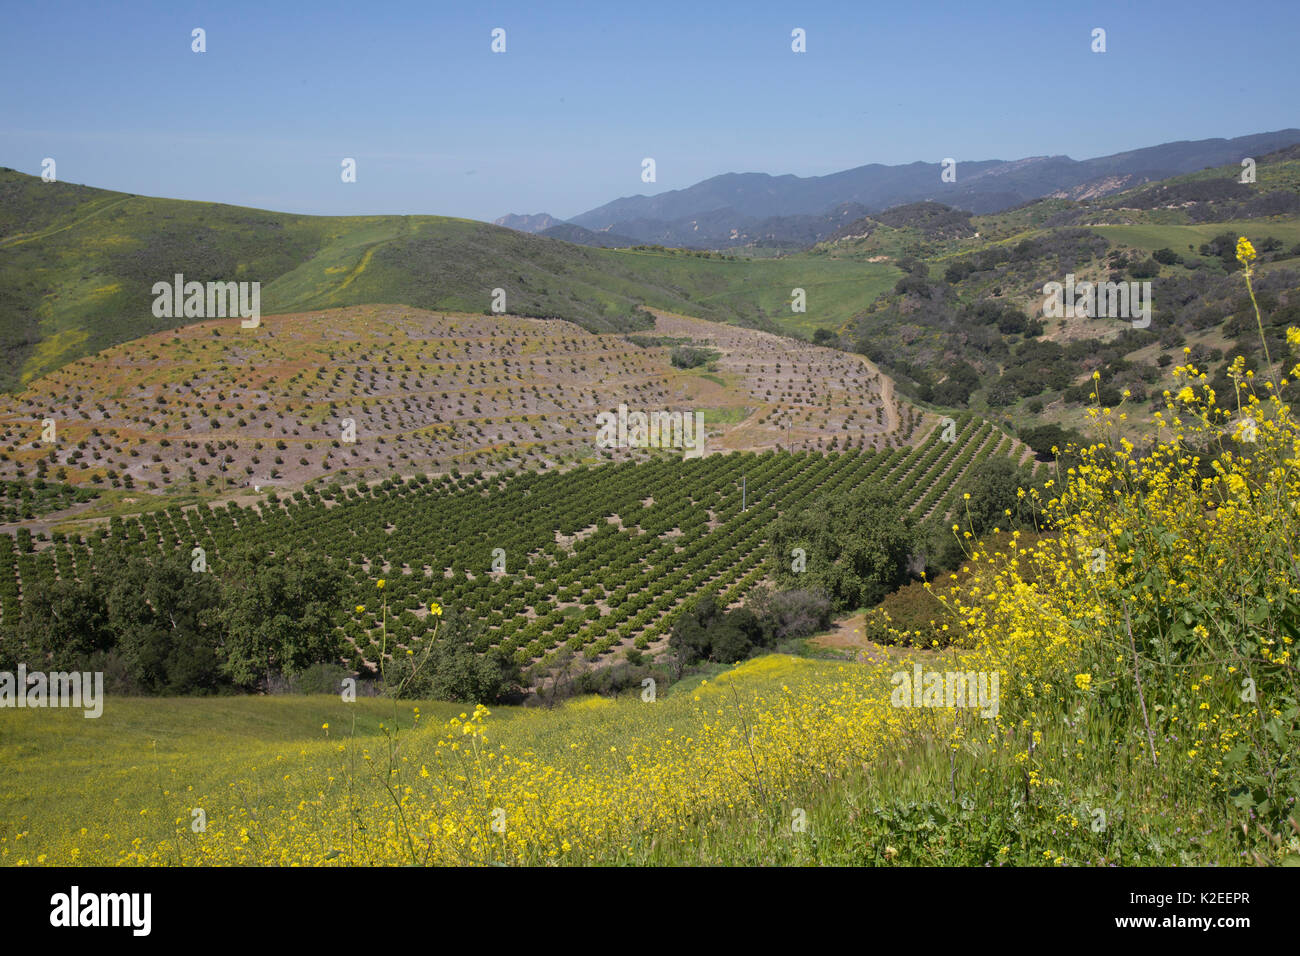 Distant avocado groves with wild mustard growing in foreground, Goleta, California, USA. - Stock Image